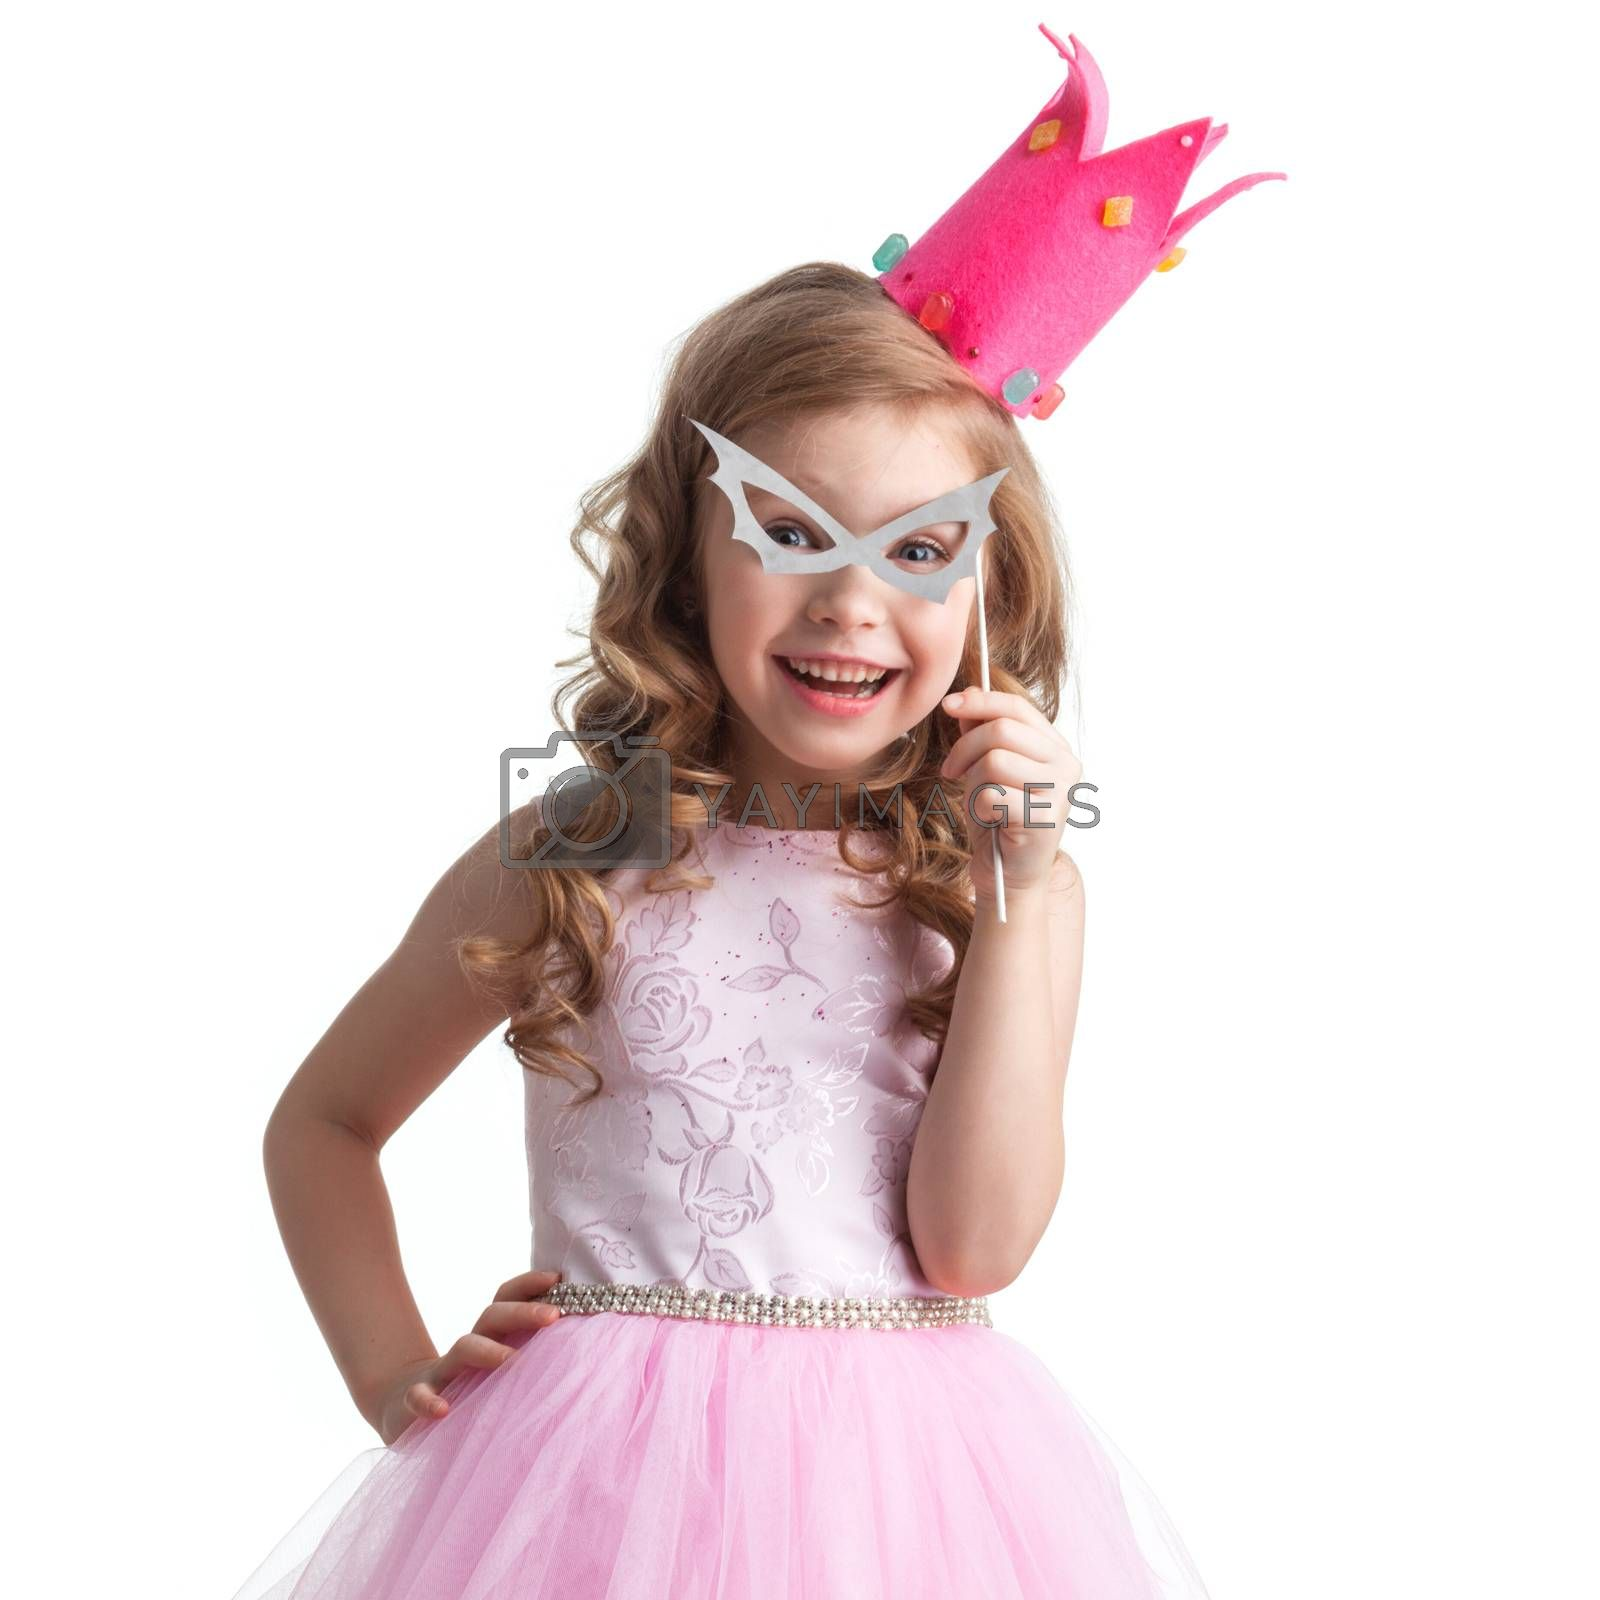 Funny princess girl in pink dress and crown holding party glasses on stick